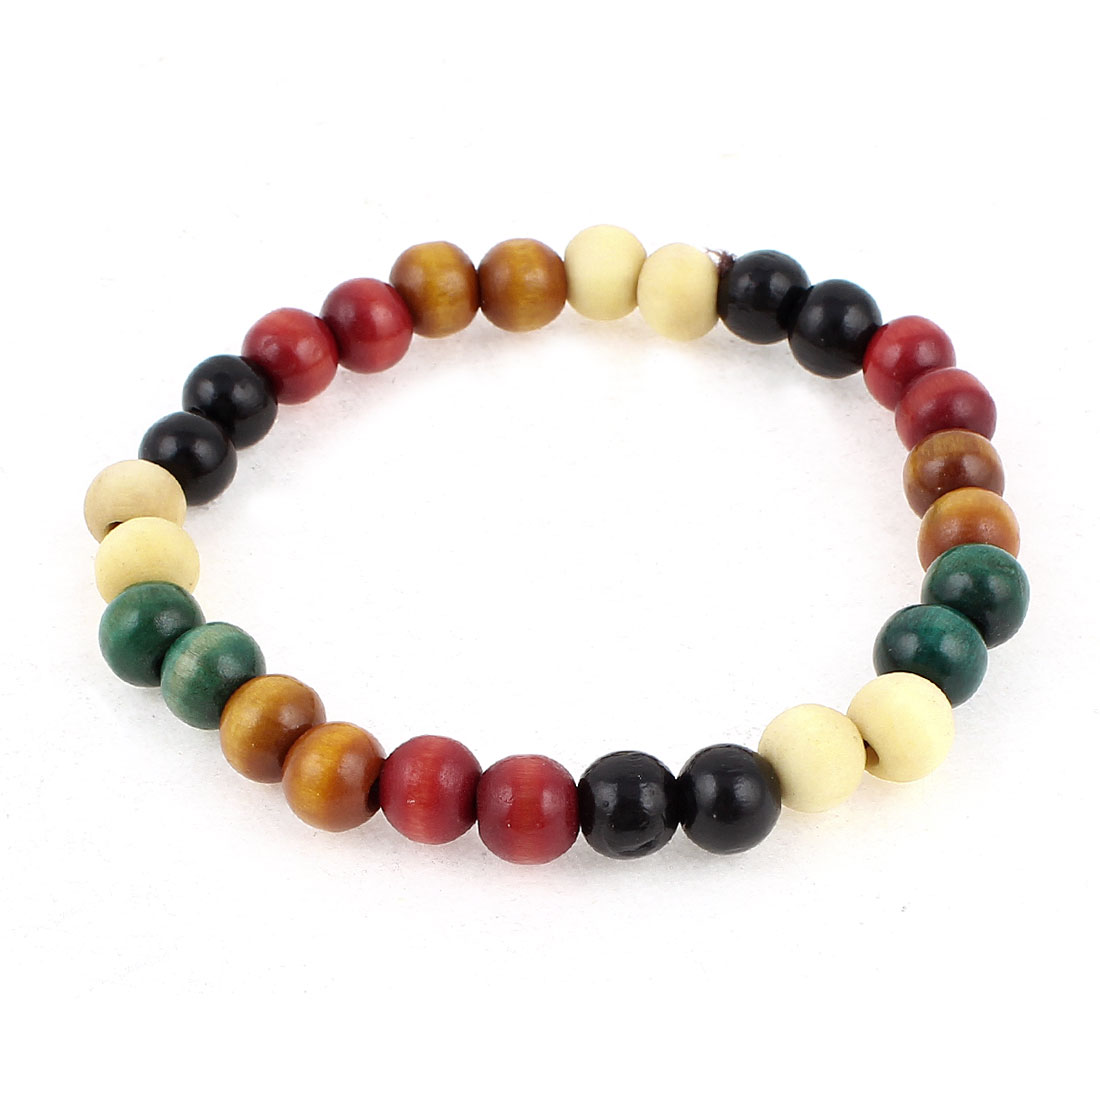 Handmade Assorted Color Wood Round Beads Decor Elastic Wrist Bracelet